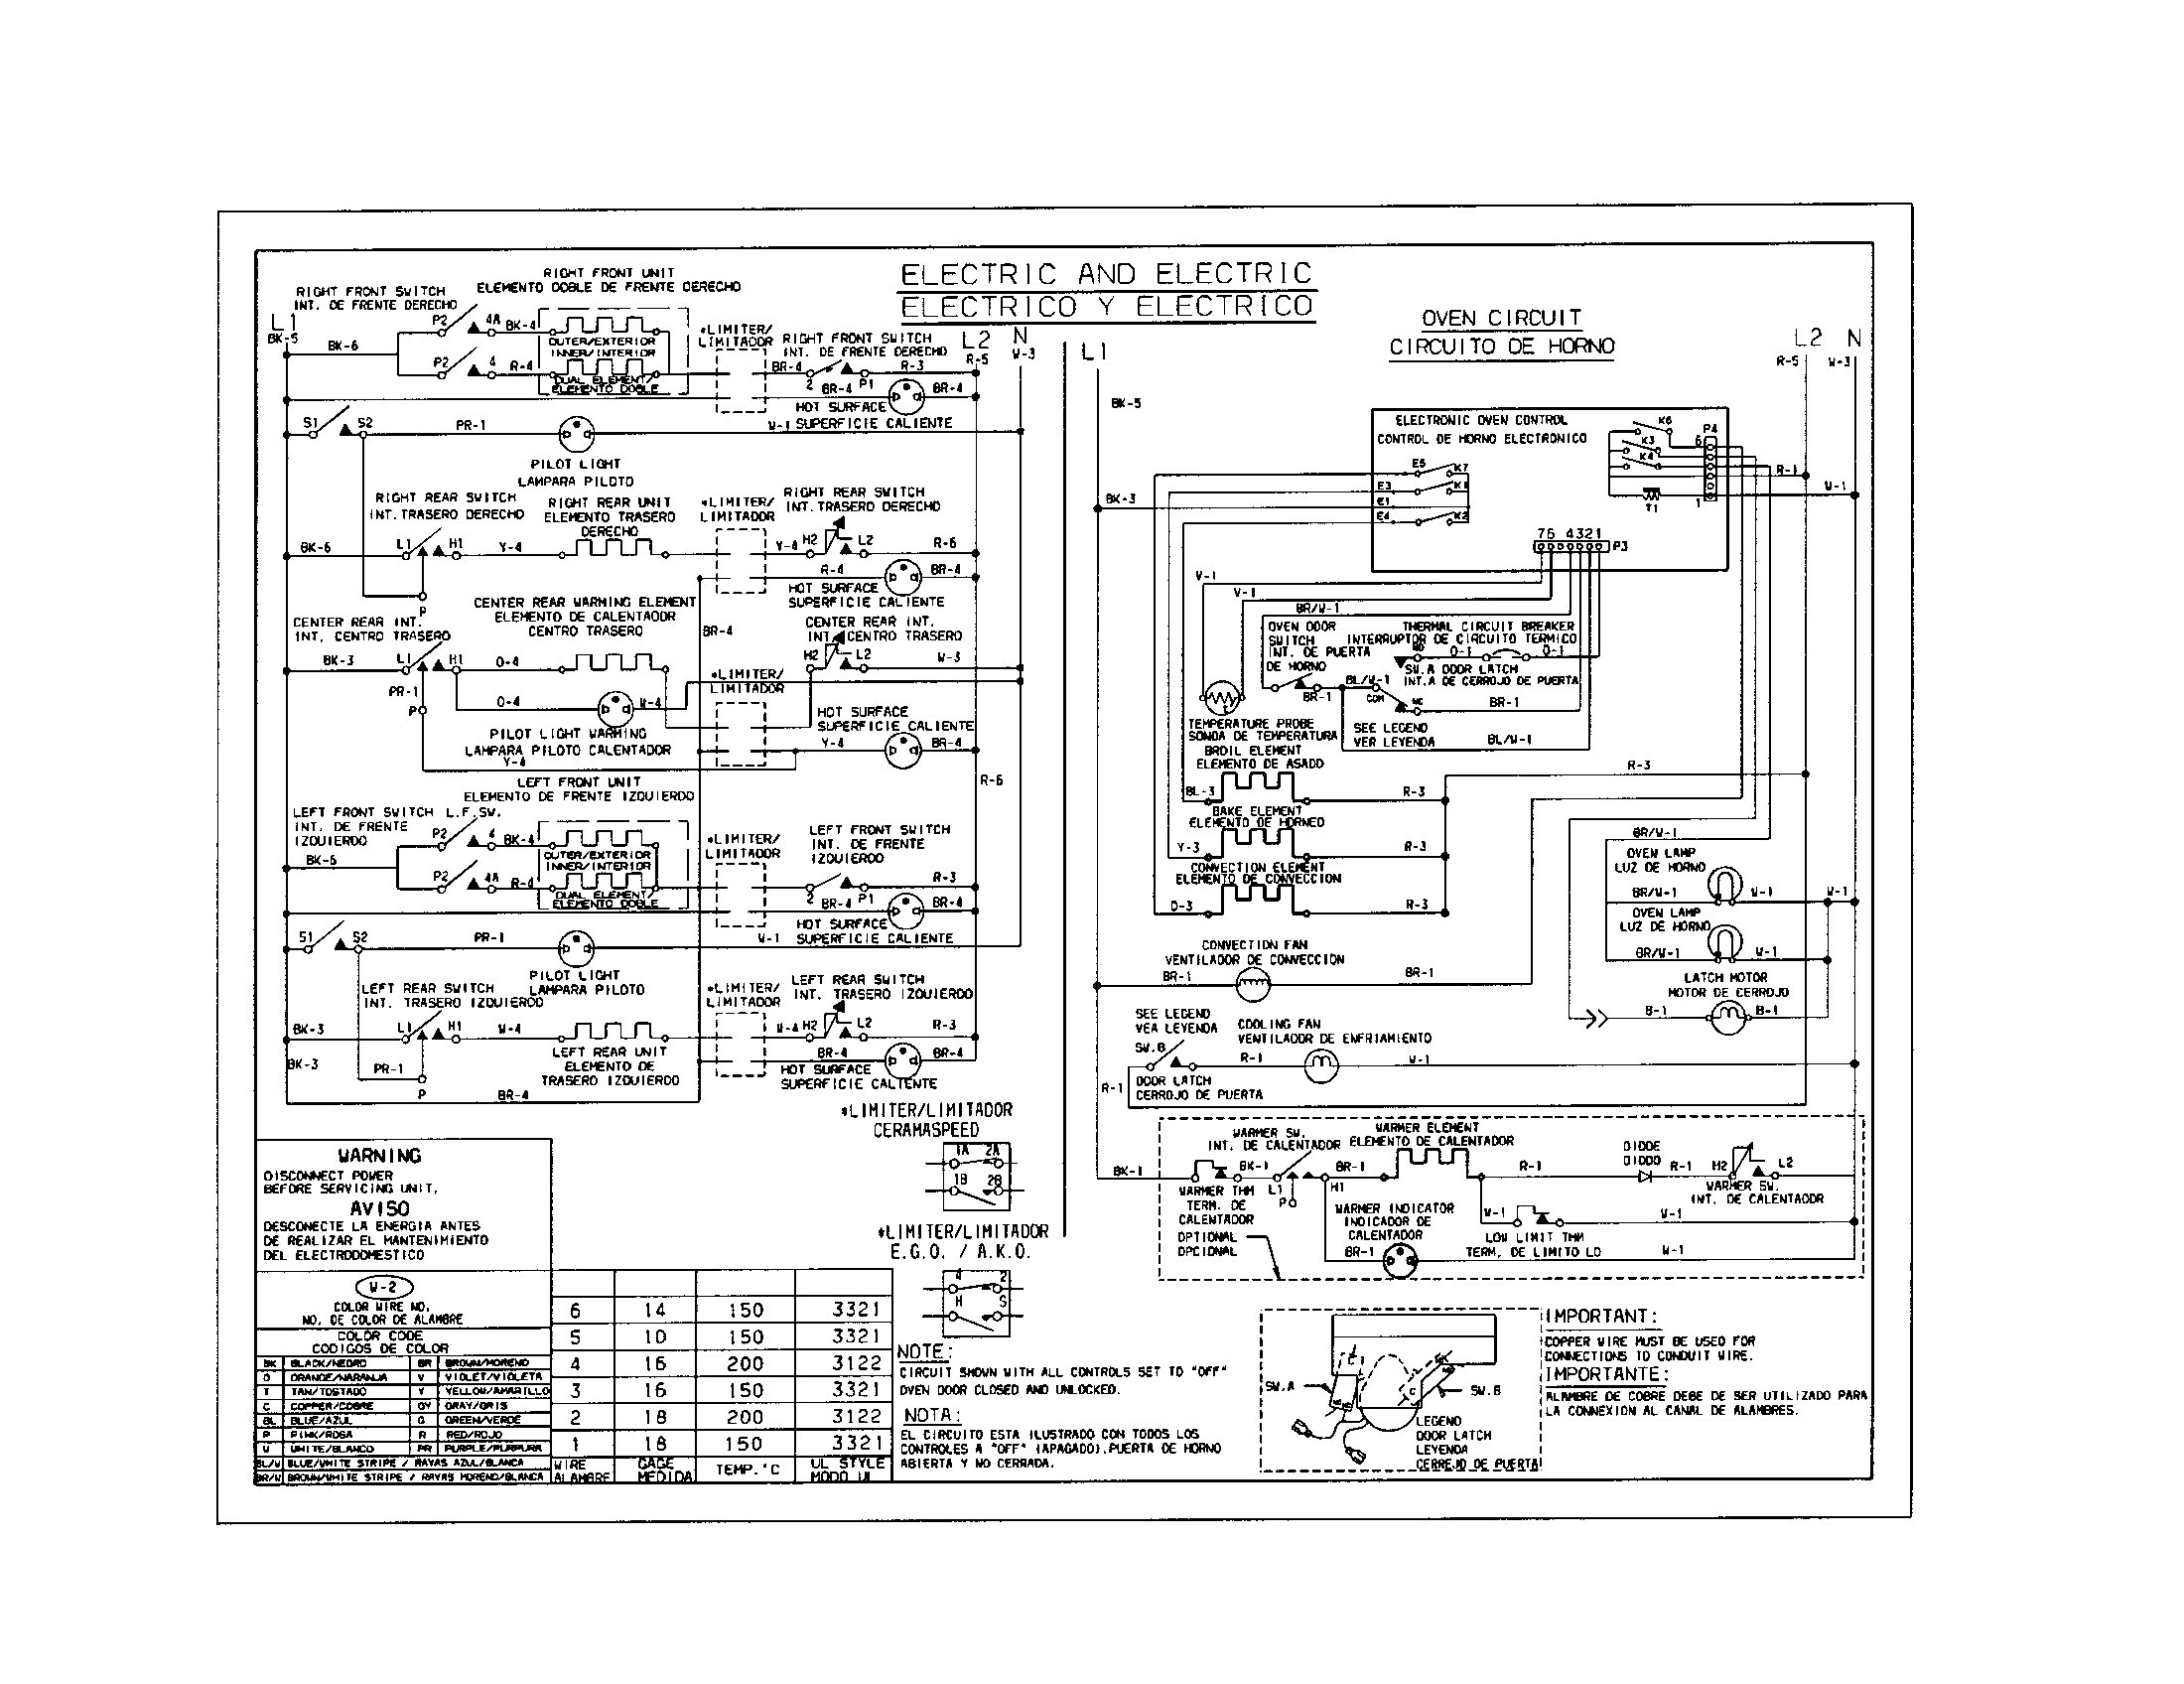 kenmore oven wiring diagram just wiring data rh ag skiphire co uk kenmore  electric range model 790 wiring diagram kenmore elite oven wiring diagram